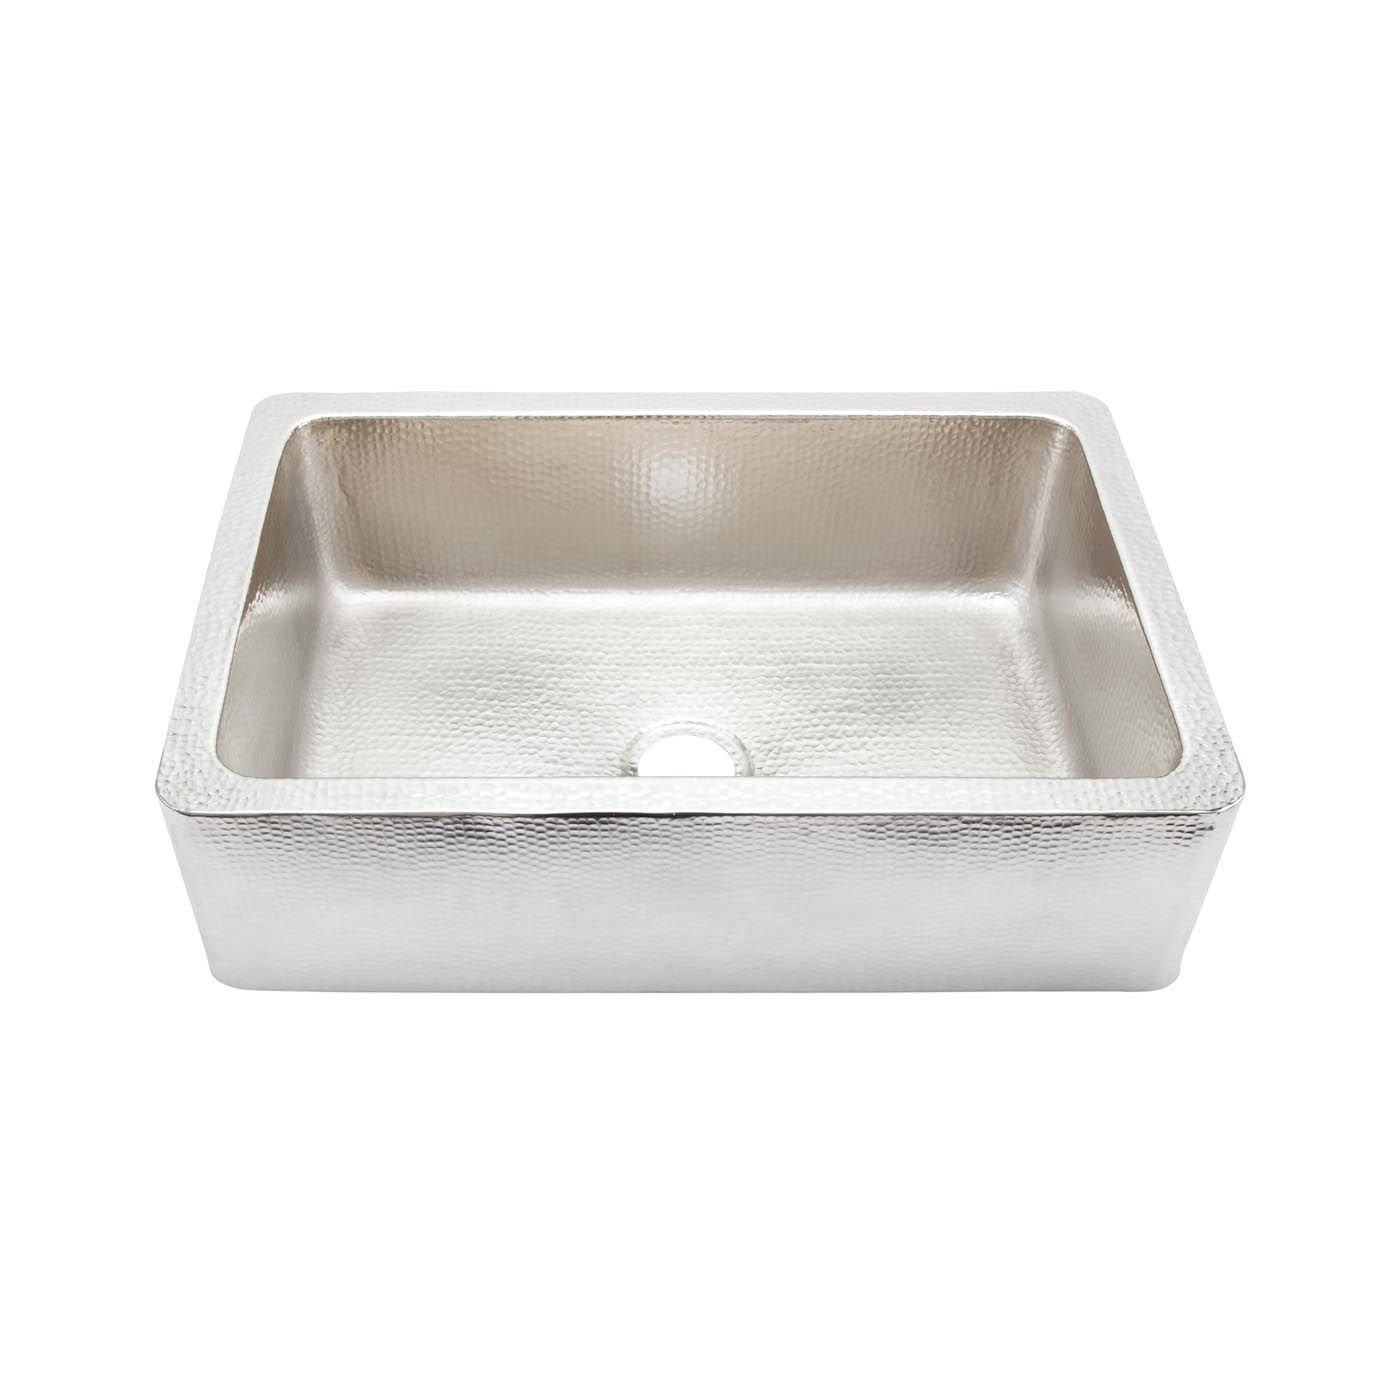 Thompson Traders Ksa 3322brn Limited Editions Hammered Nickel Lucca Kitchen Sink At Atg Stores Copper Kitchen Sink Sink Apron Front Kitchen Sink